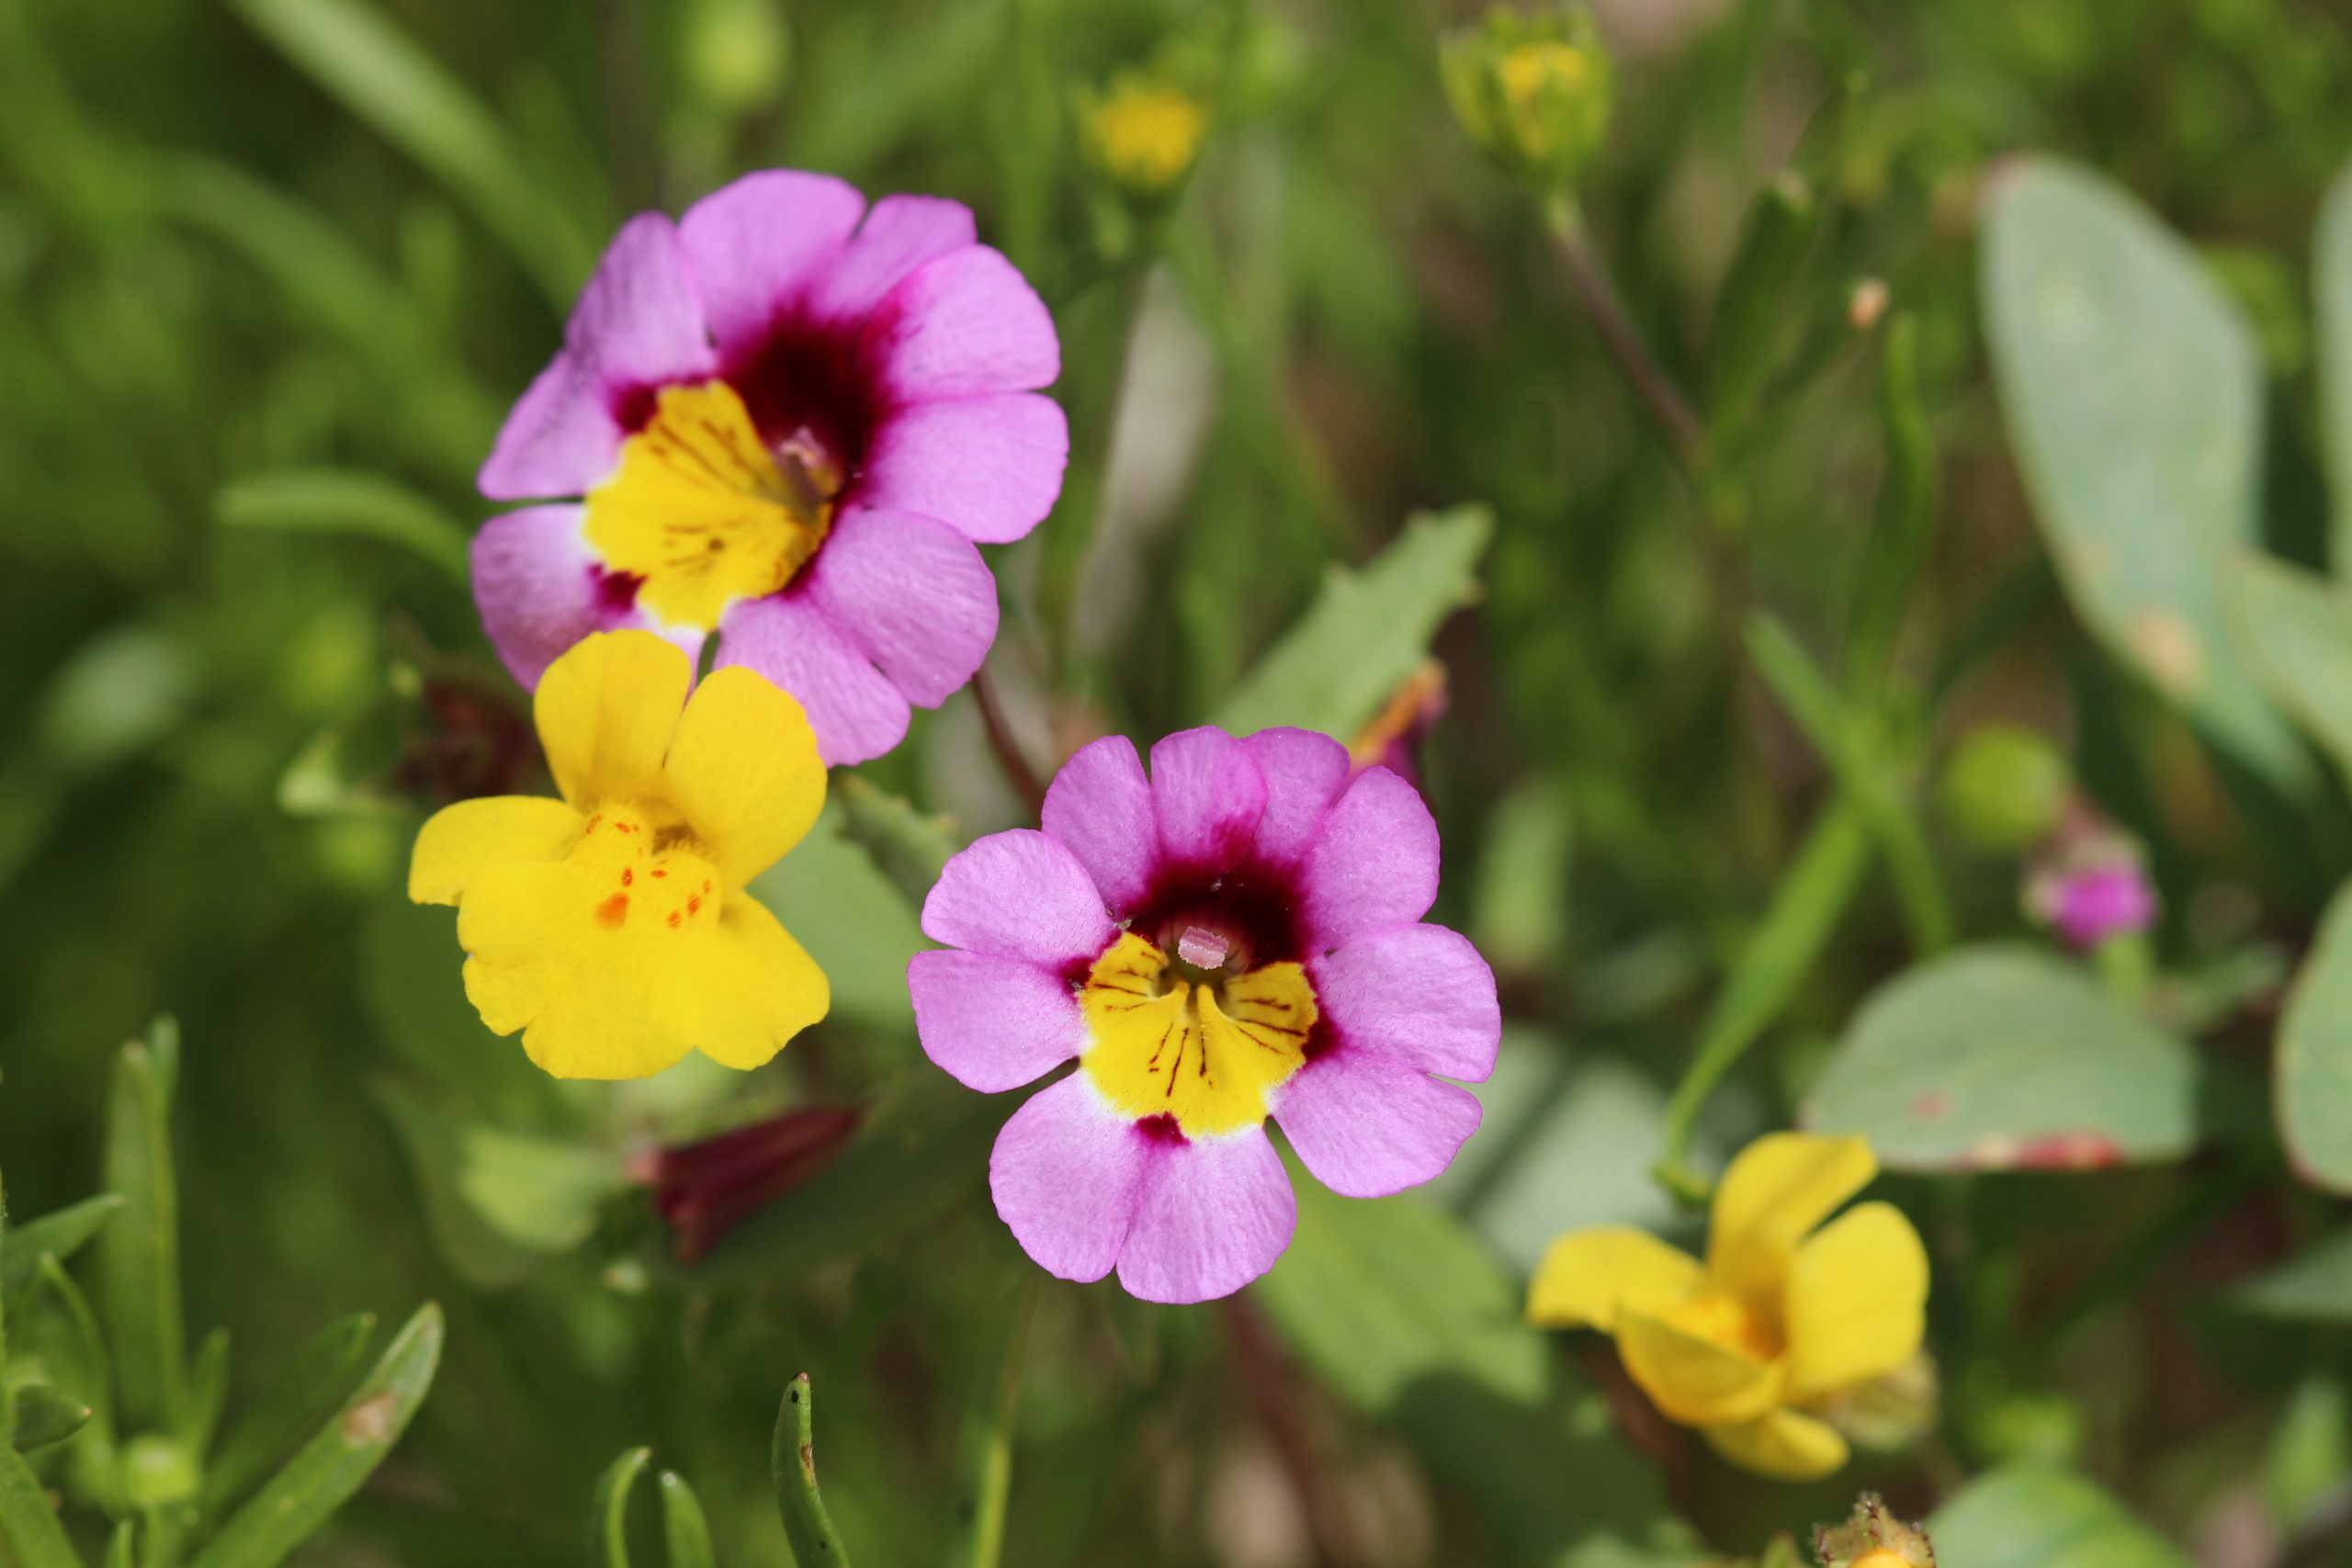 Image of Red Rock Canyon monkey flower (Erythranthe rhodopetra).